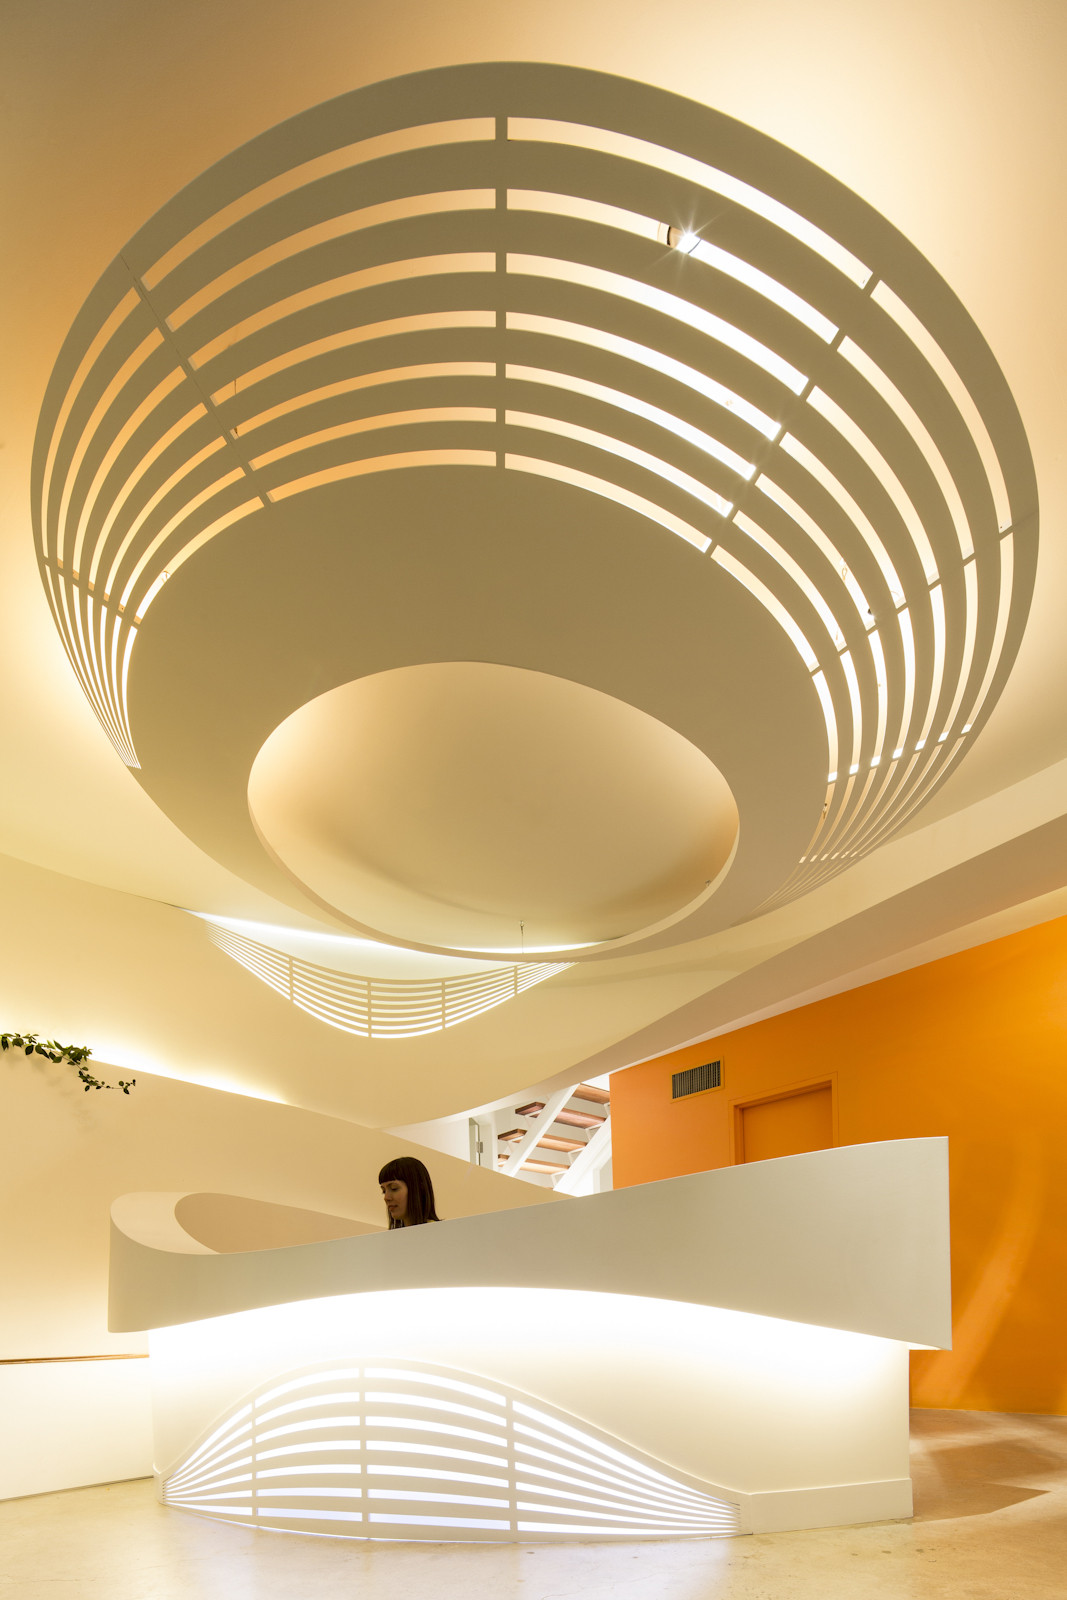 Edgecliff Medical Centre / Enter Architecture